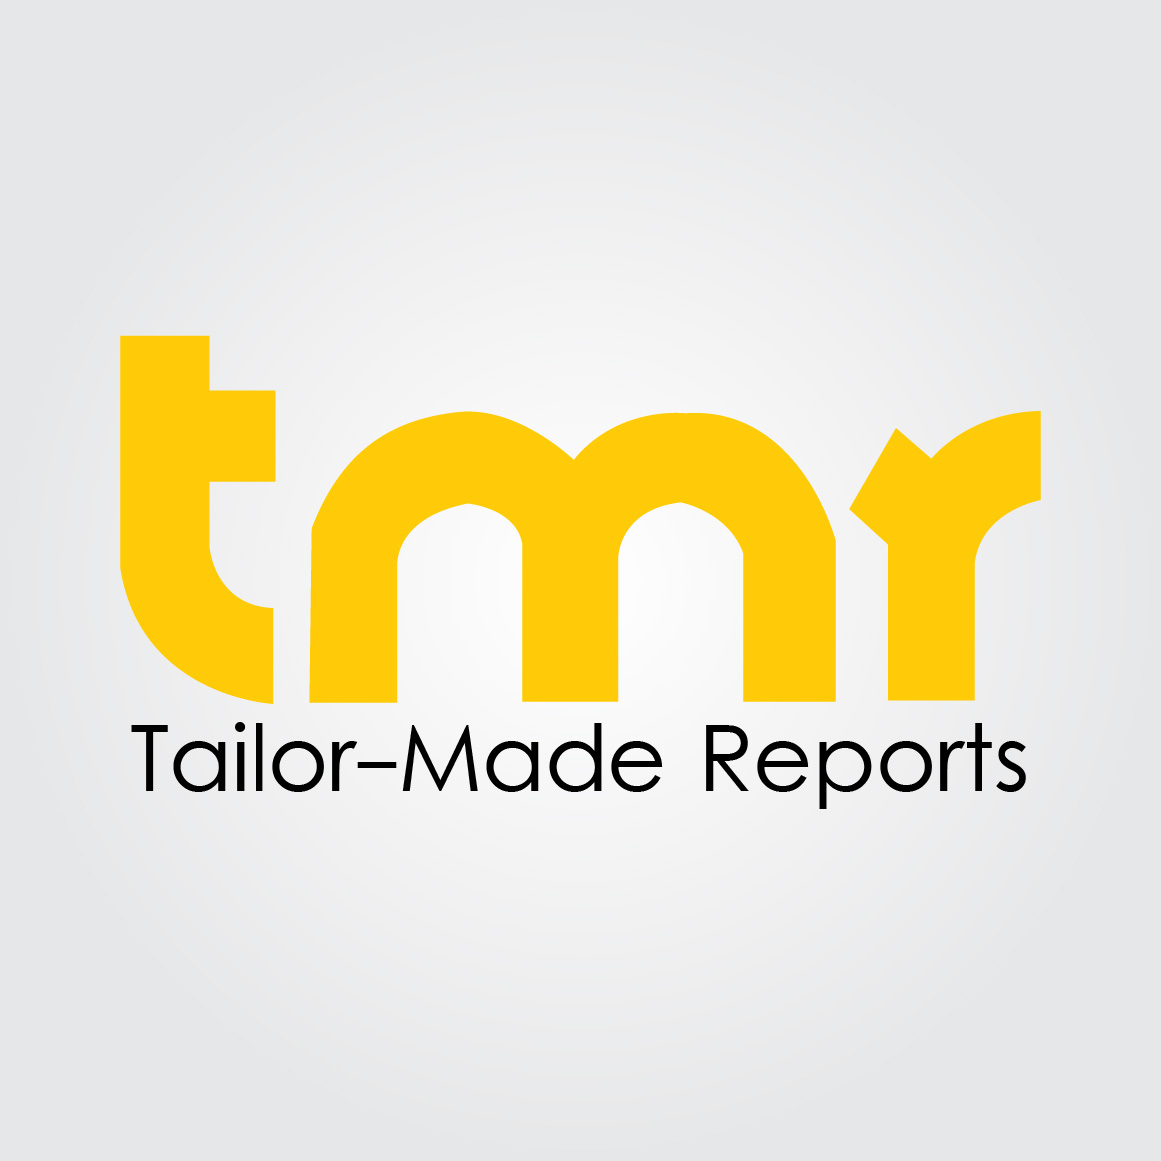 Plastic Ready Meal Trays Market | Demand for Plastic Ready Meal trays across the Food Industry has Generated Humongous Revenues